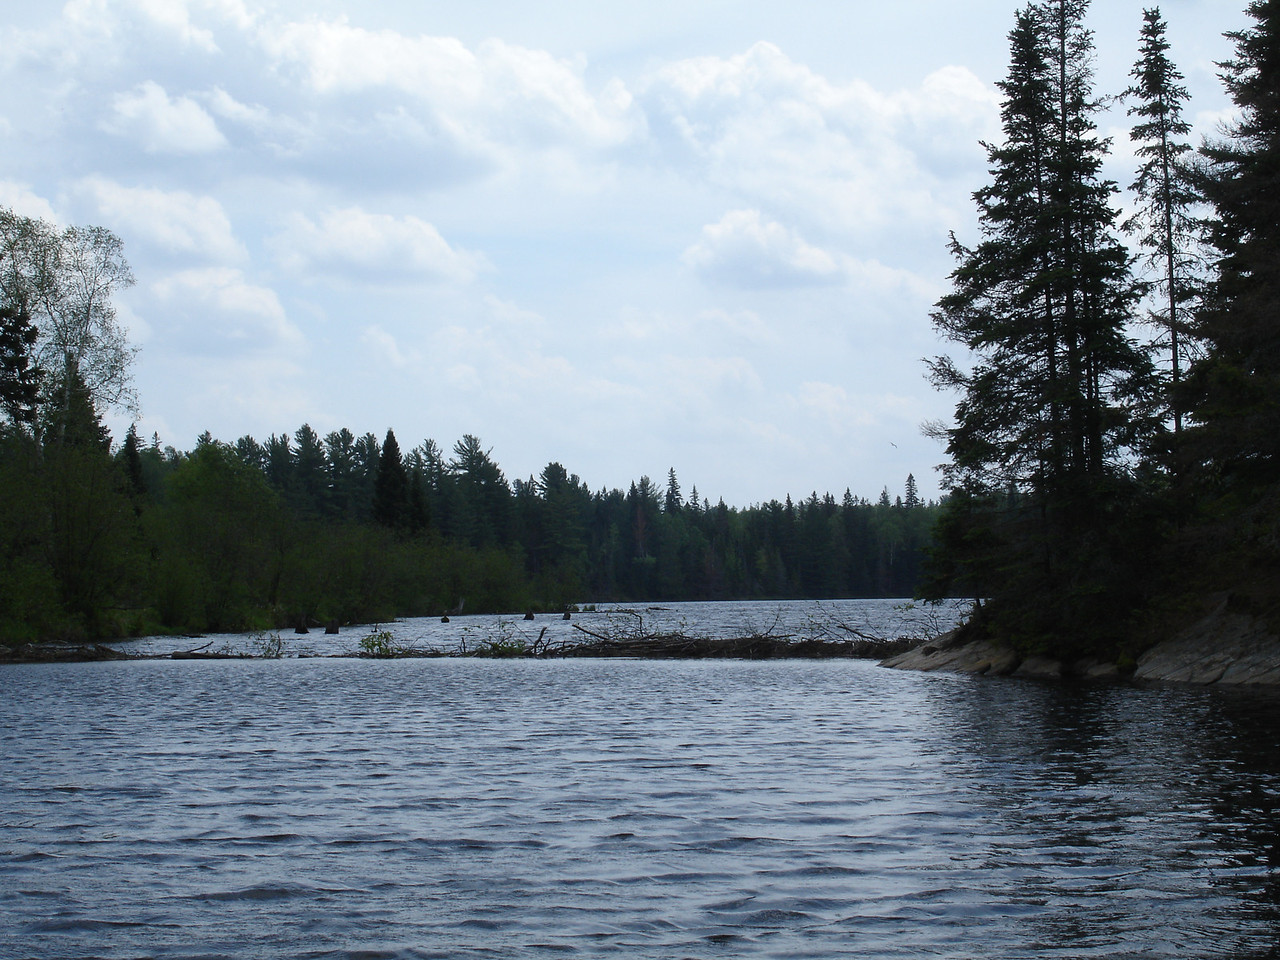 Just crossed this beaver dam lift-over which blocks access to Tom Thomson Lake.